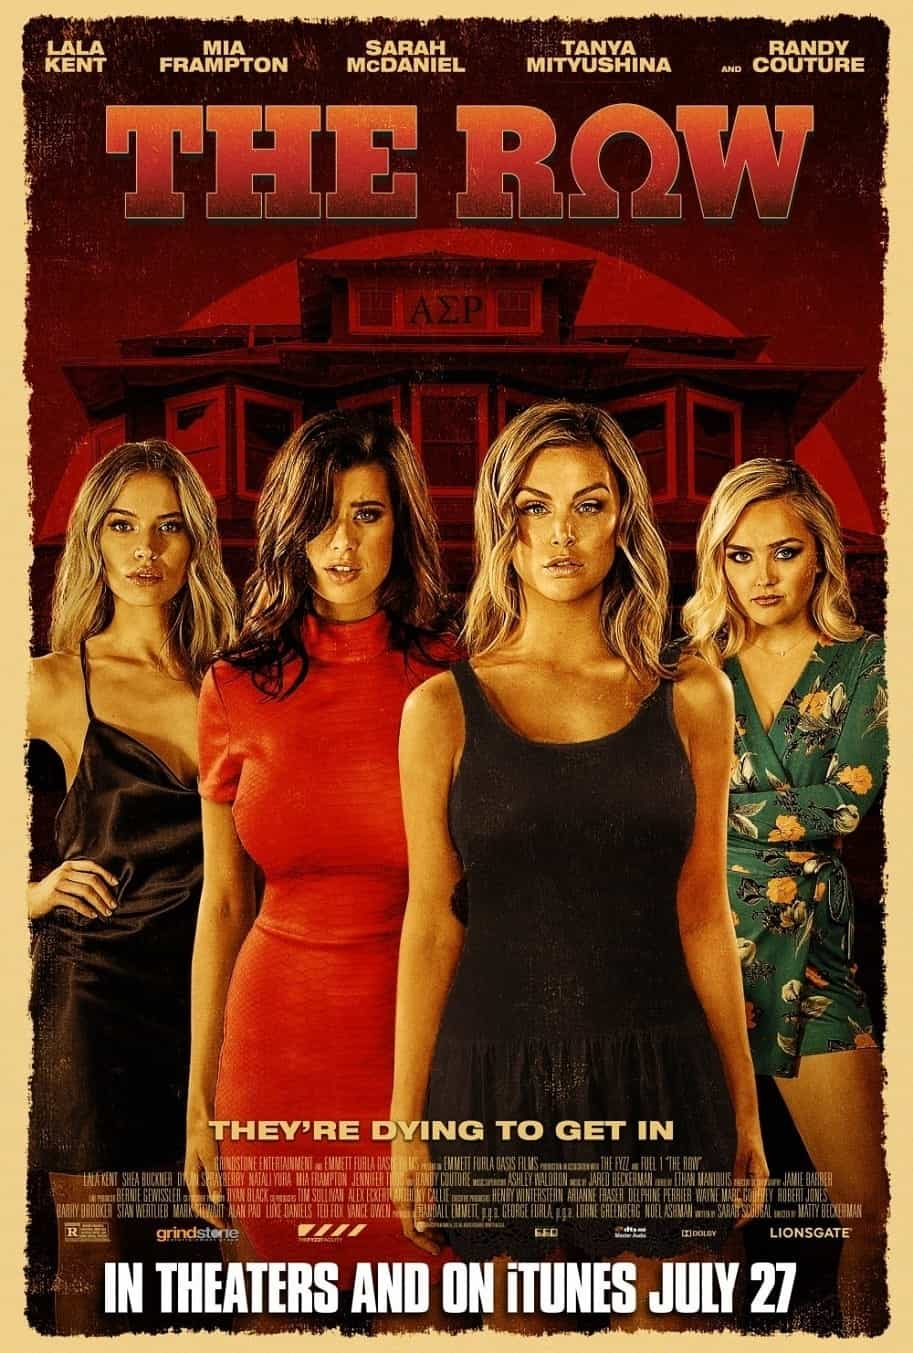 Lala Kent The Row Movie Poster